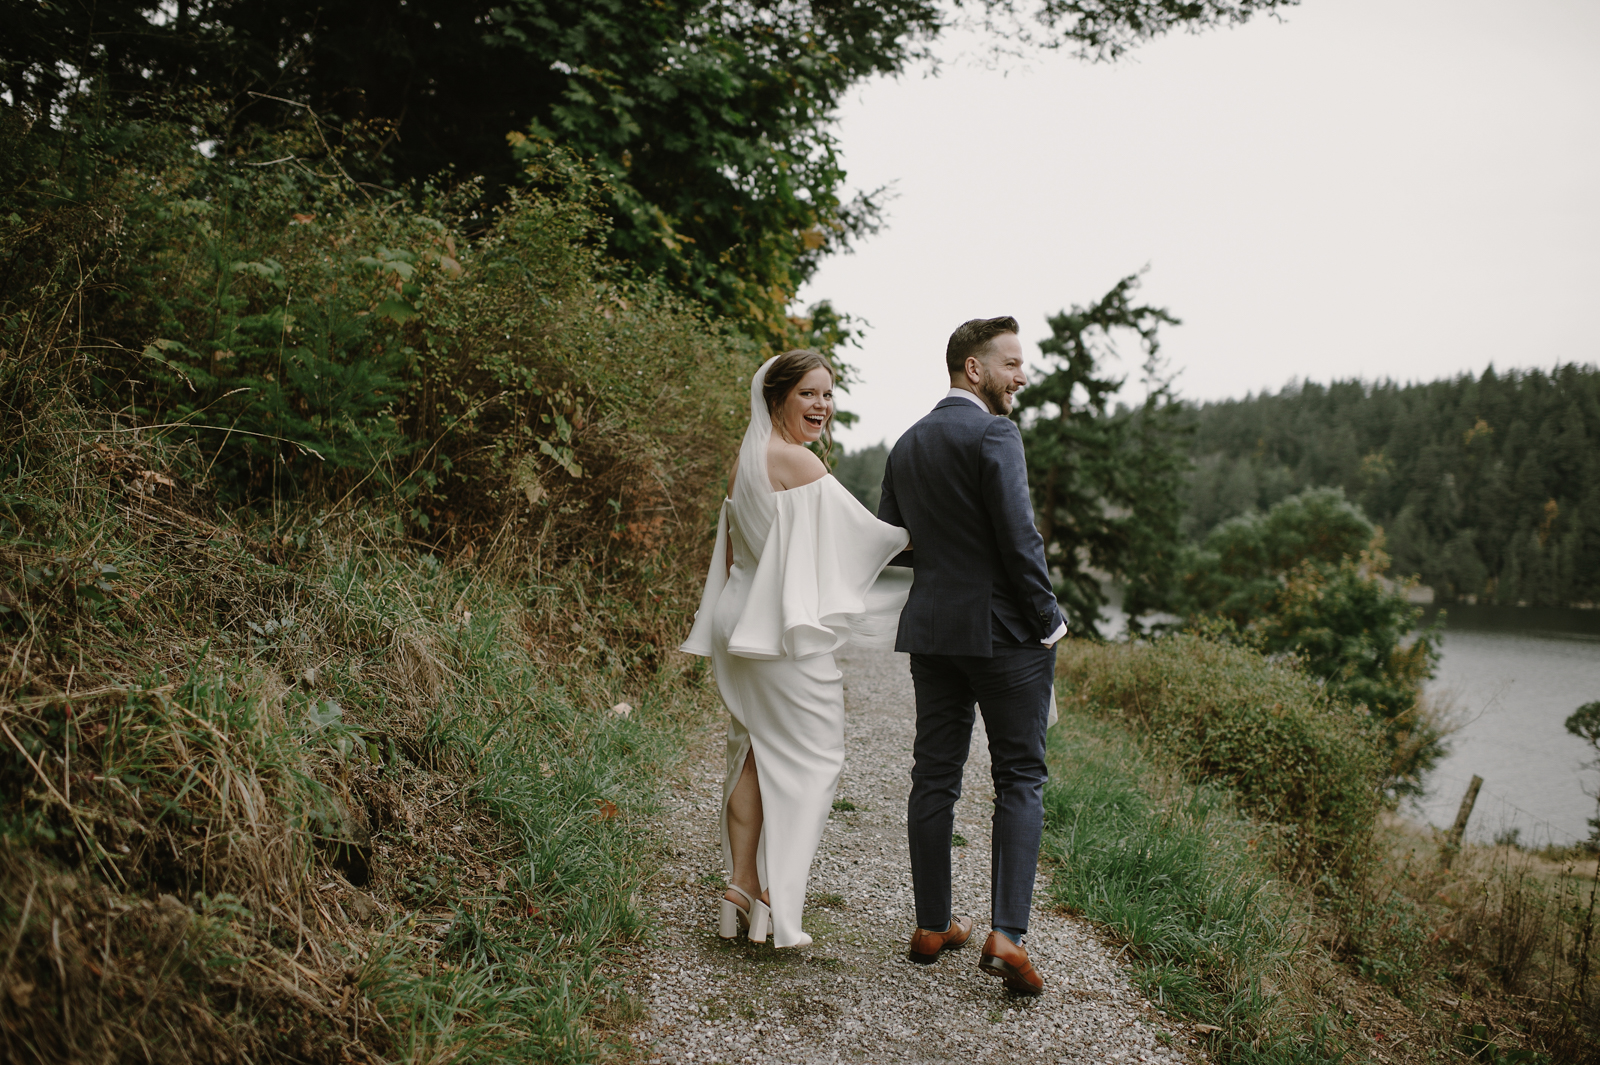 Kristen_Marie_Parker_Woodstock_Farm_Wedding020.JPG